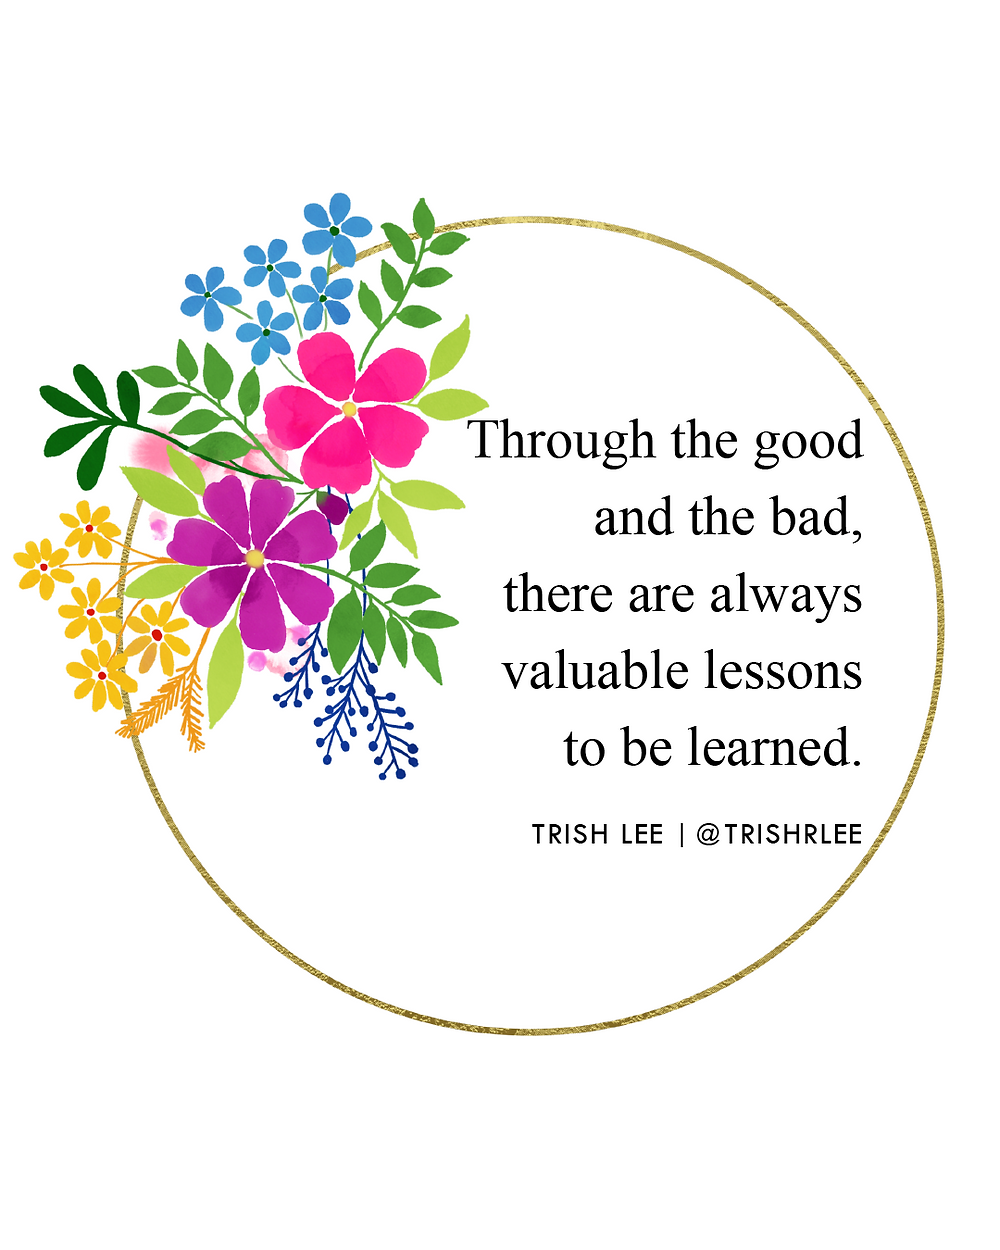 Like this quote? Buy it now printed on high-quality merchandise